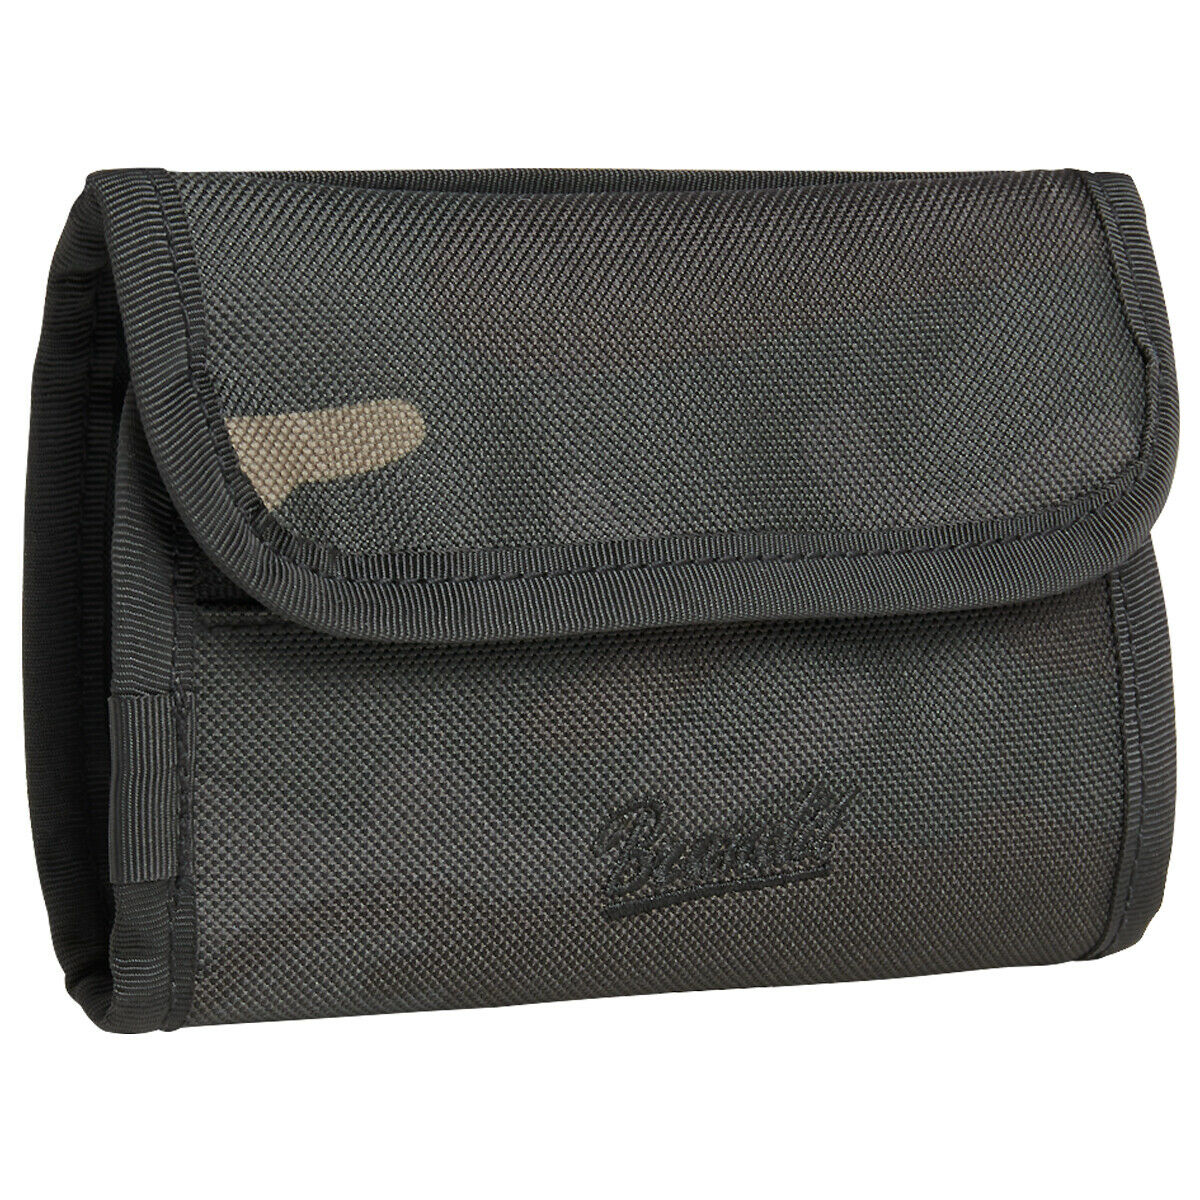 Brandit Wallet Two Zipped Coin Compartment Card Slots Foldable Travel Dark Camo